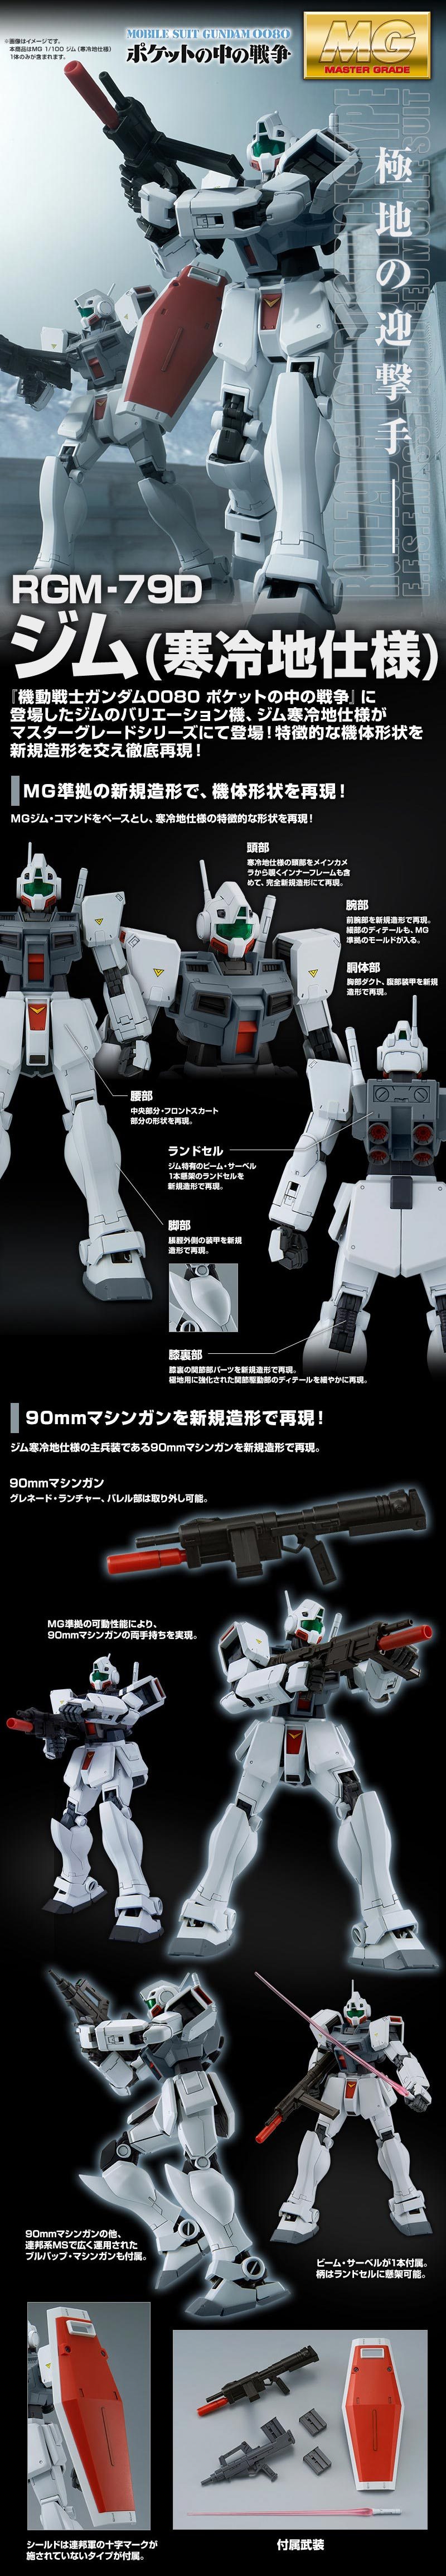 MG GM Cold Districts Details